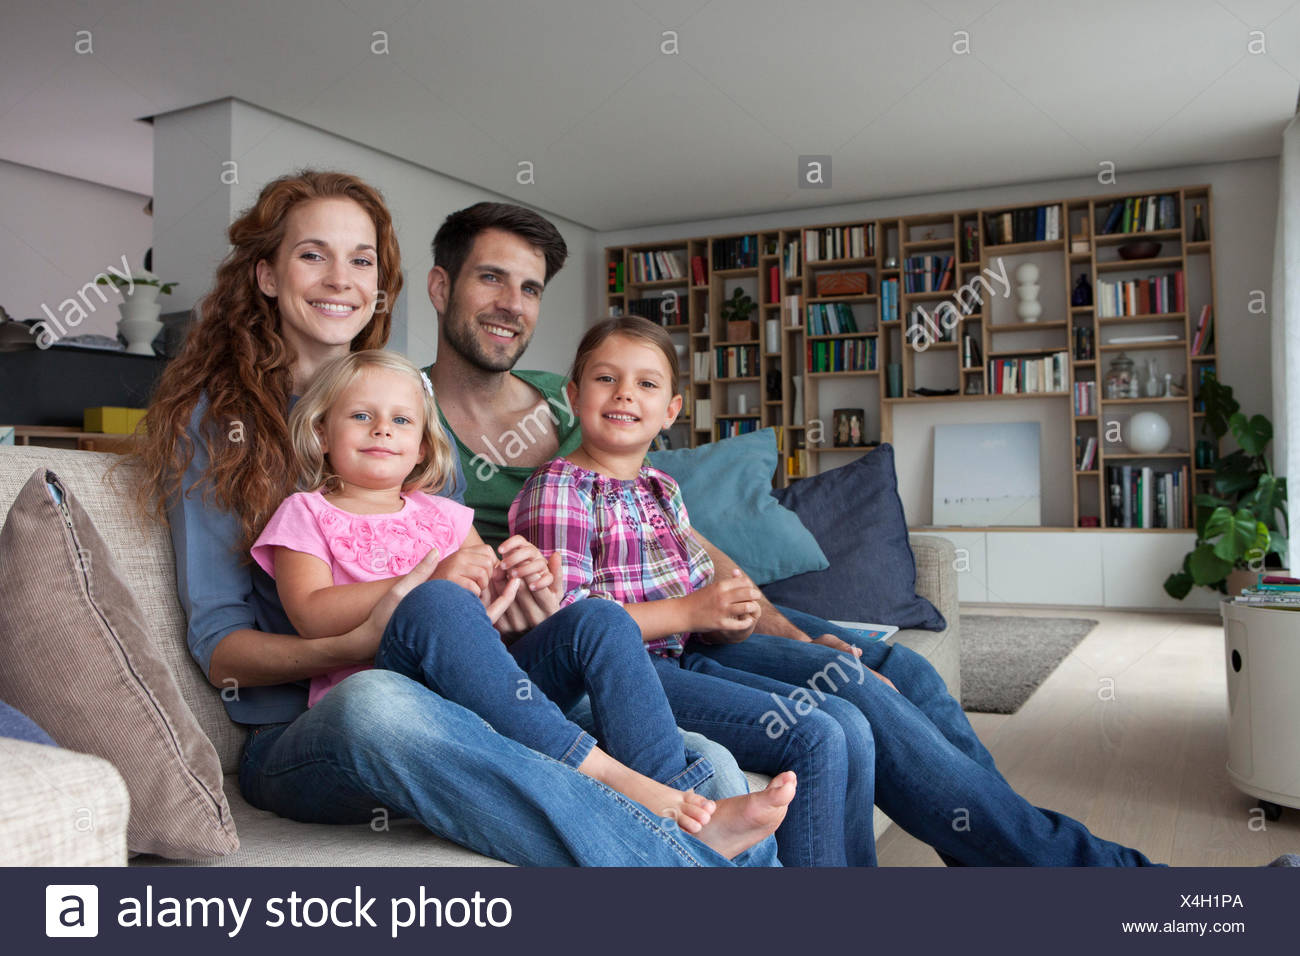 Family portrait of couple with two little girls sitting together on couch in the living room Stock Photo